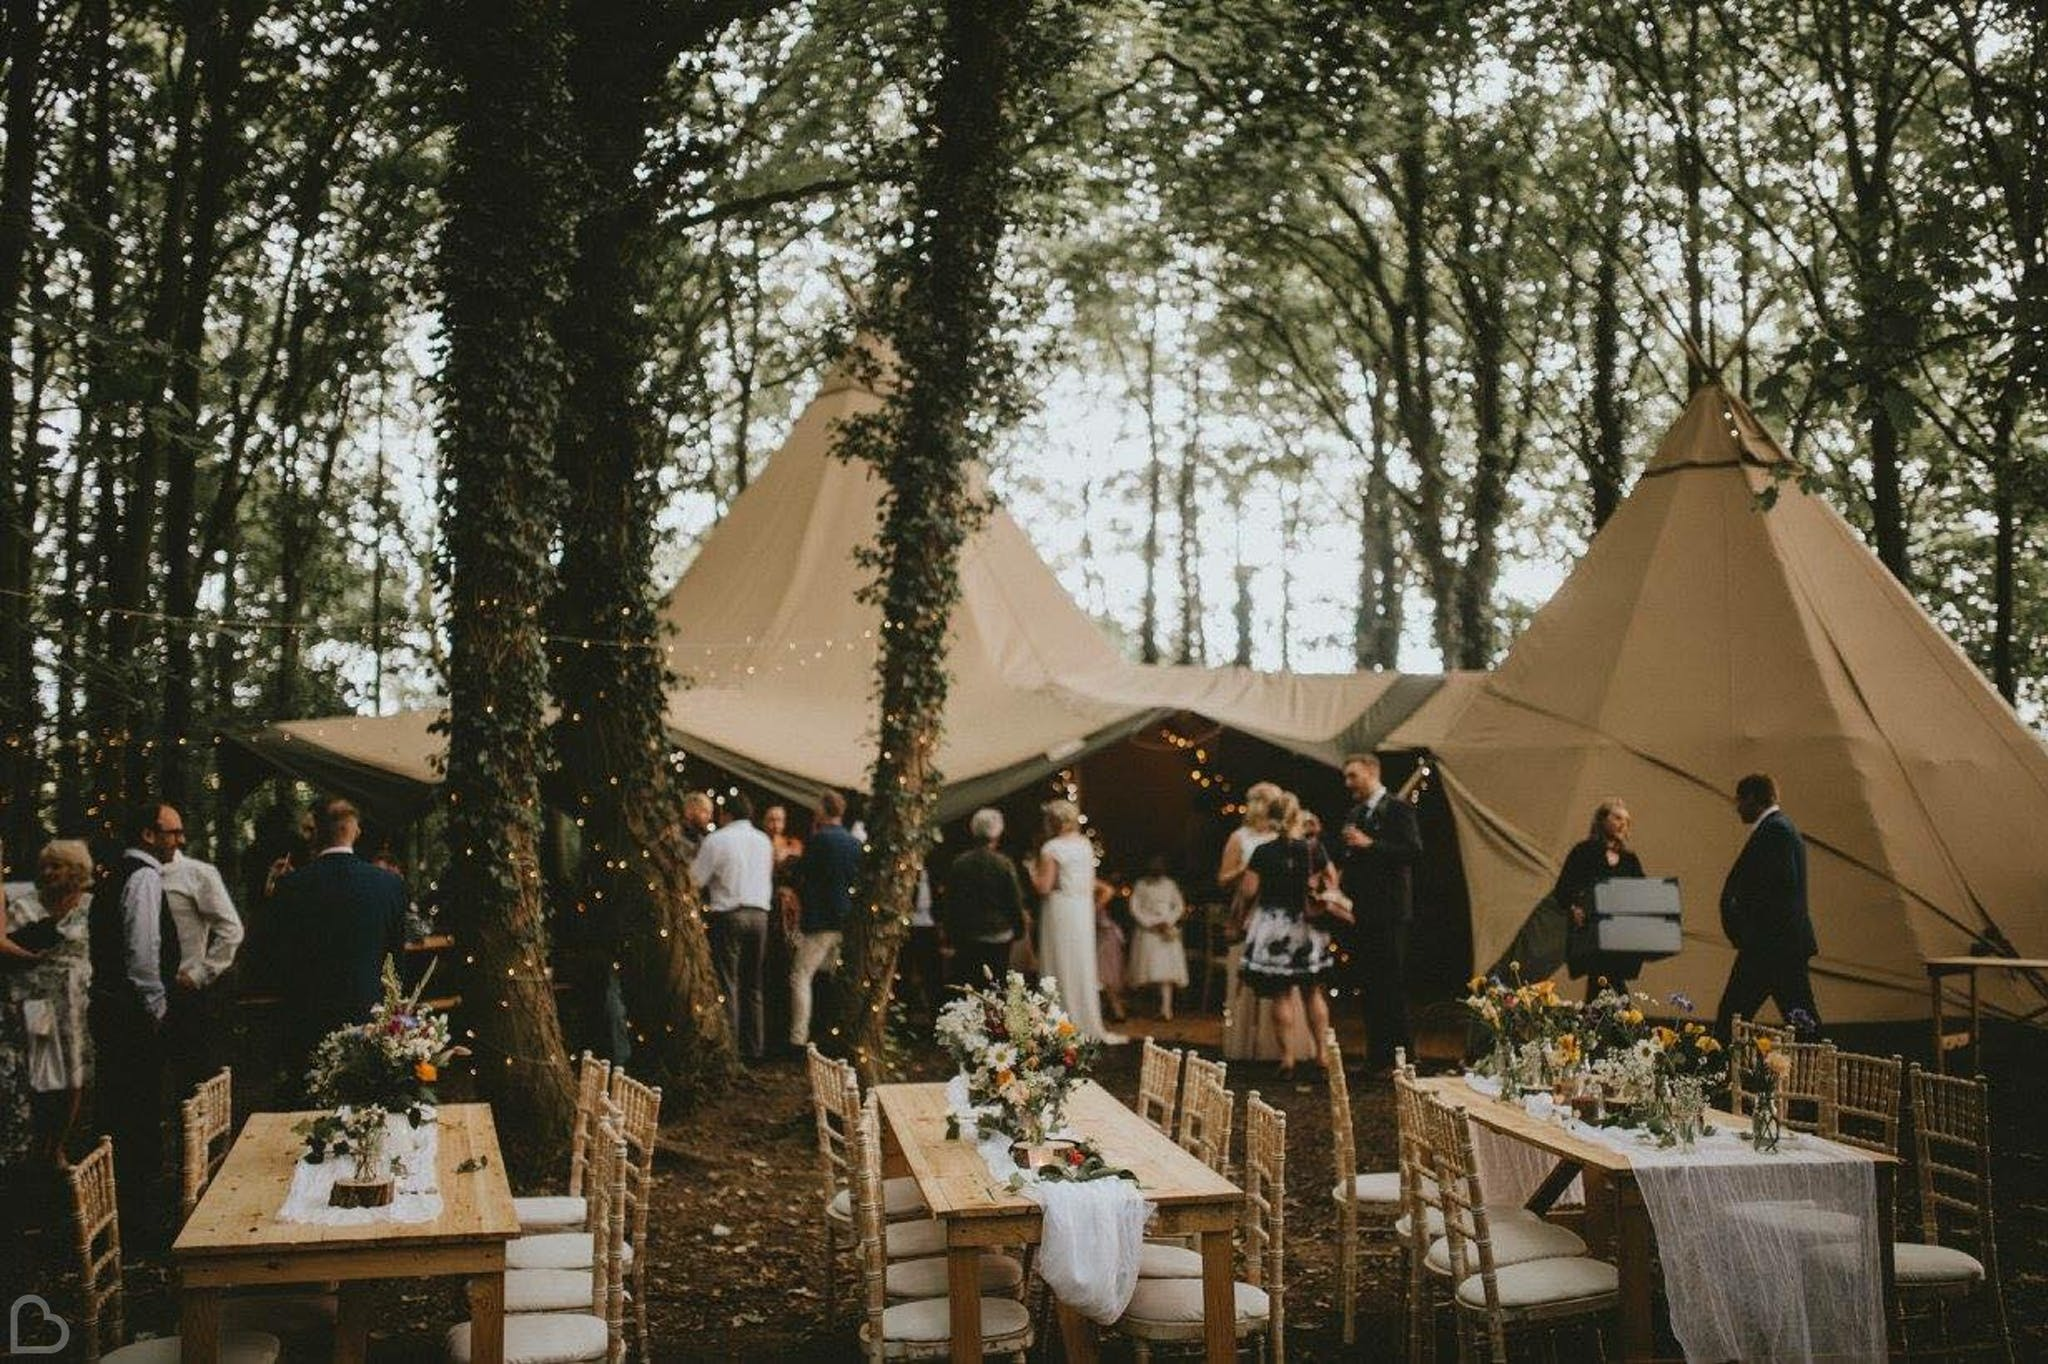 Rustic wooden seating at stunning outdoor woodland wedding venue